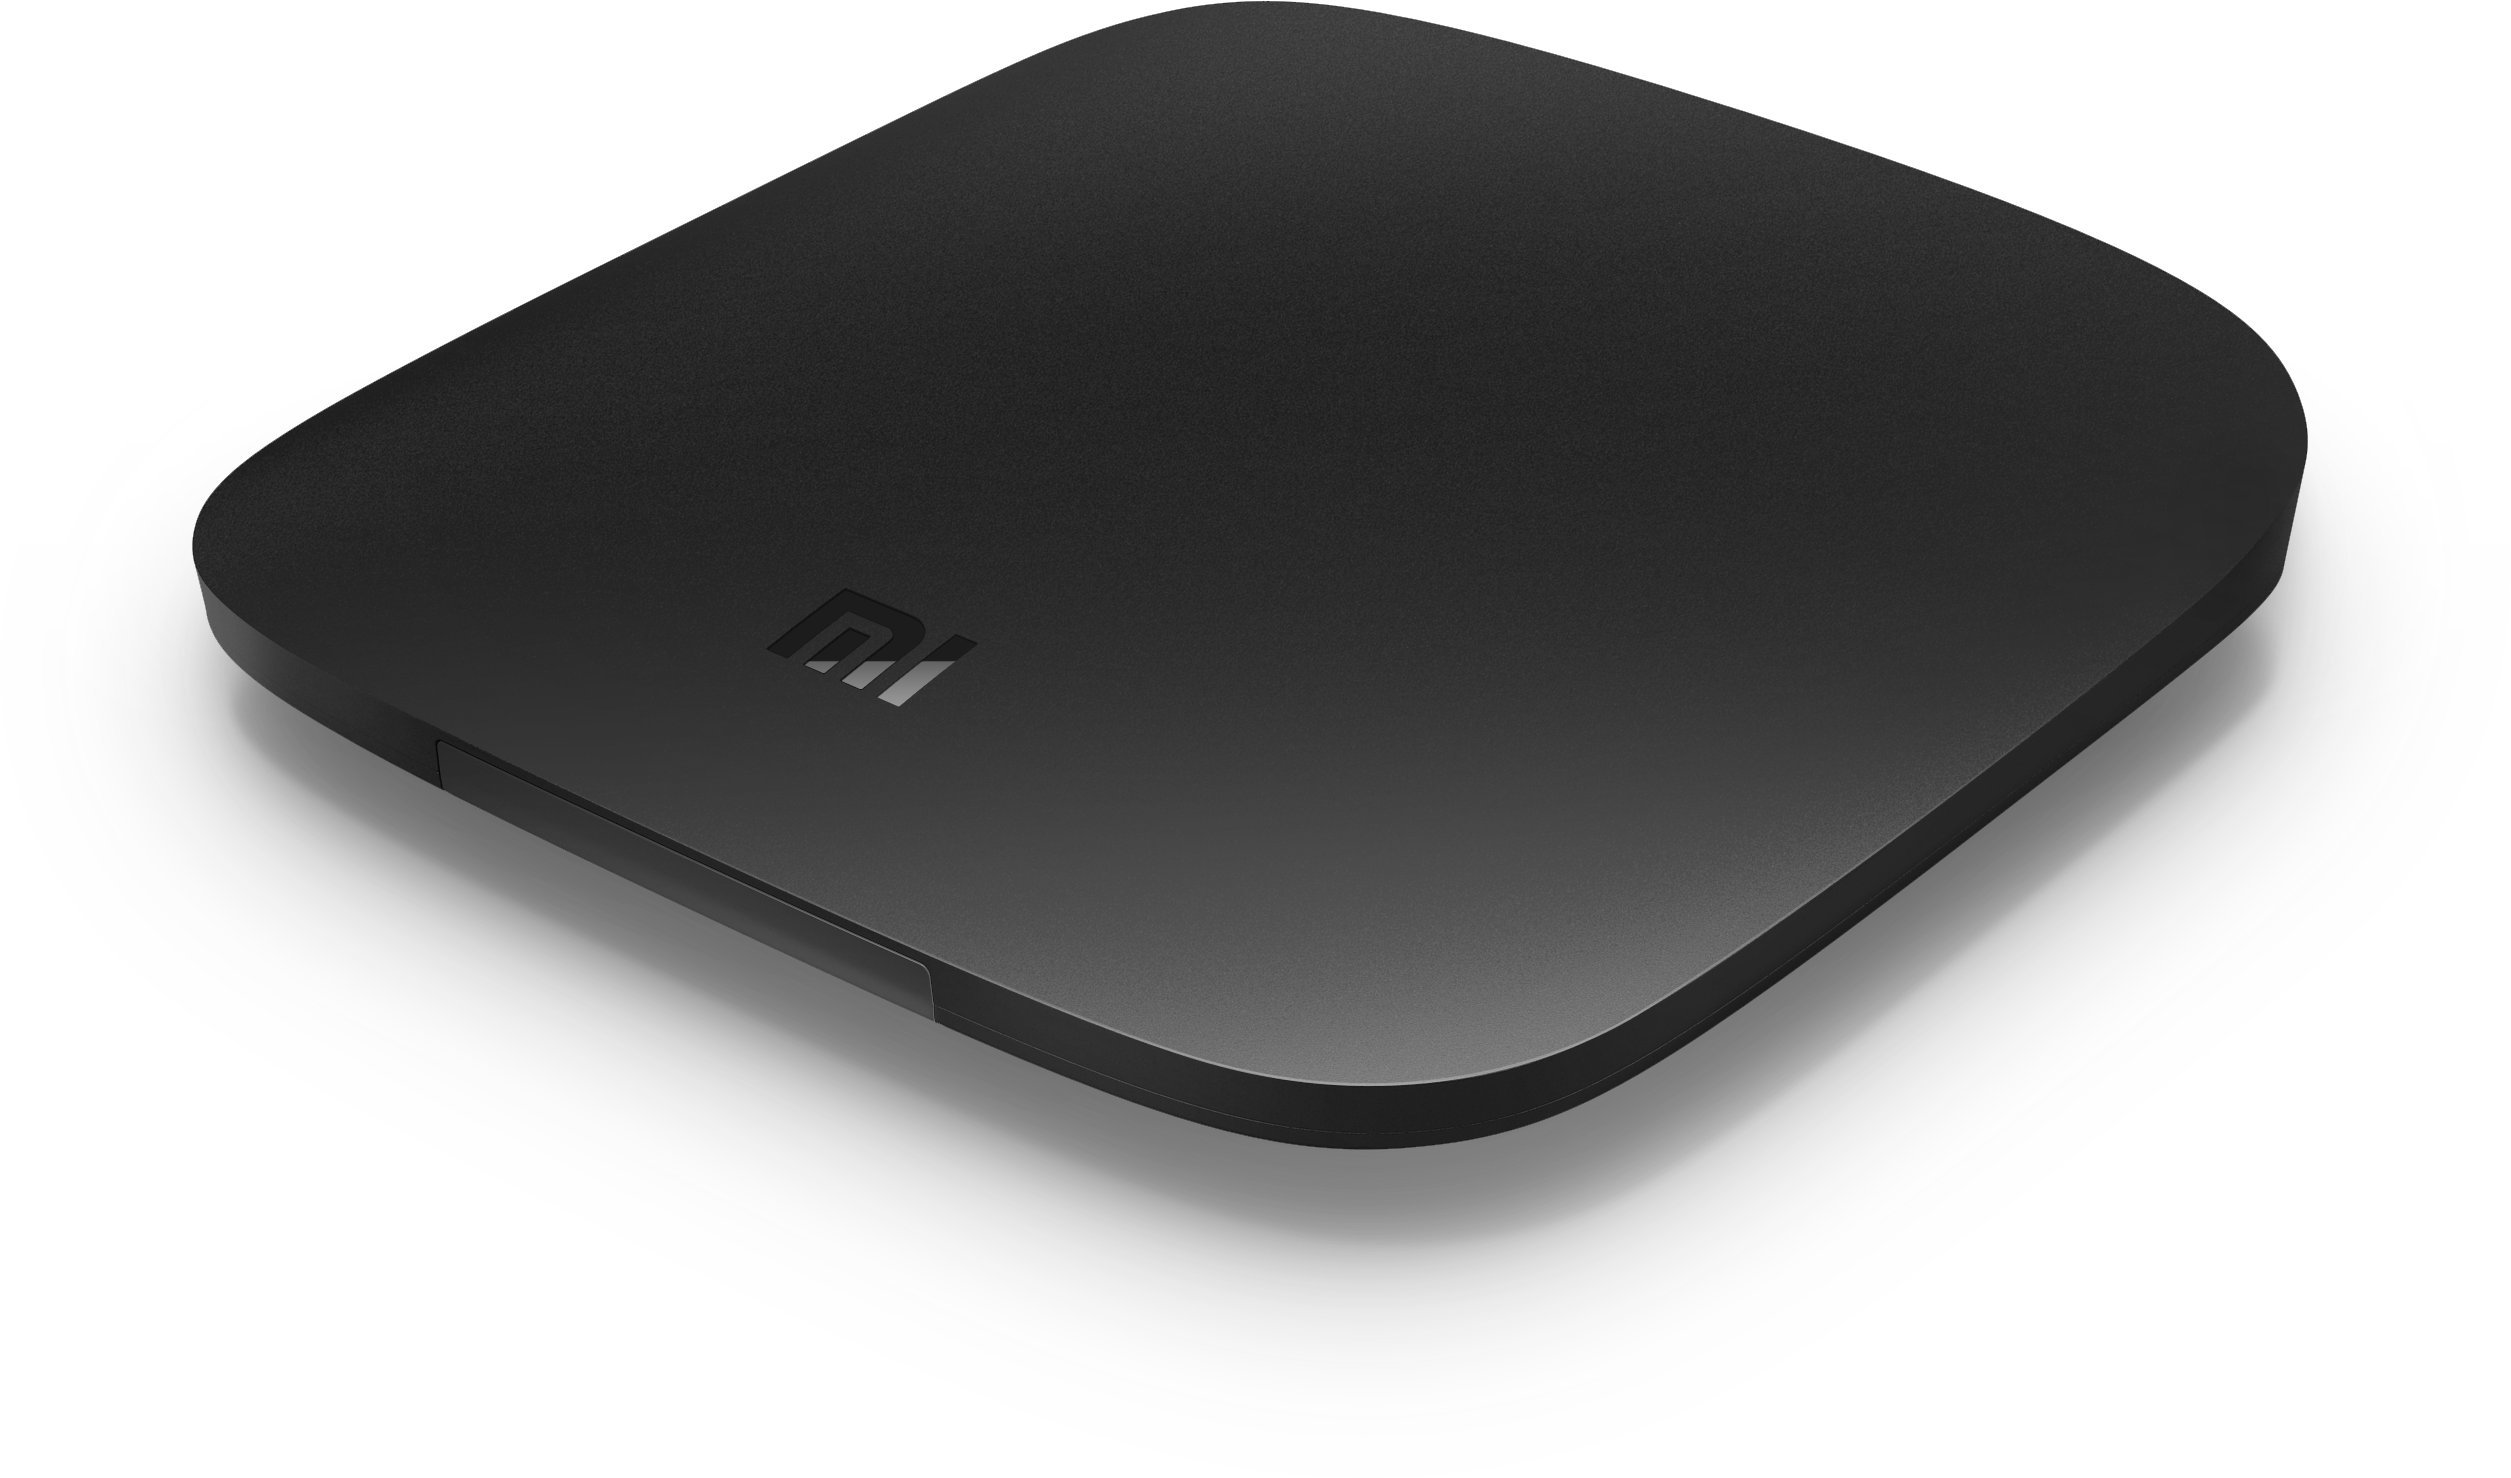 Xiaomi MDZ-16-AB - TV Box (4K, HDR, 2 GB RAM, 2.0 GHz, Android 6), Negro: Xiaomi: Amazon.es: Electrónica